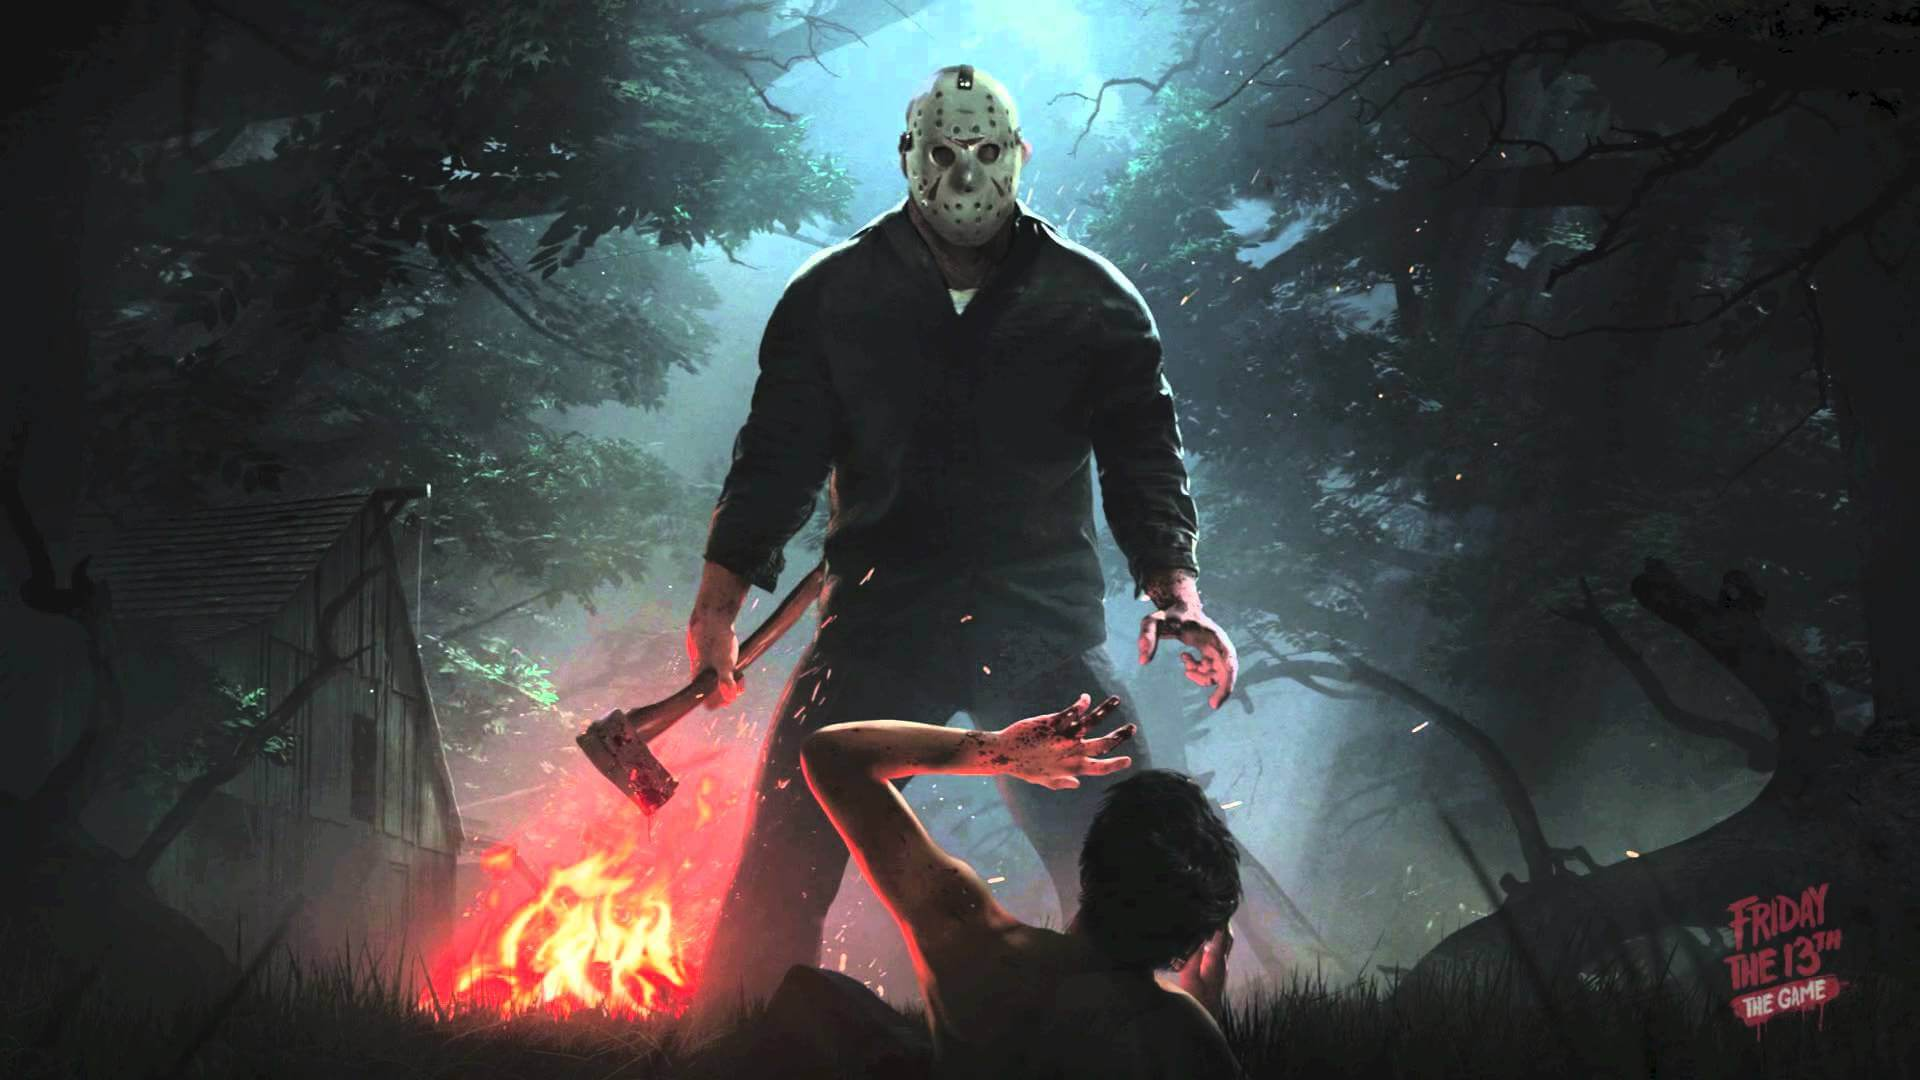 Friday The 13th Friday The 13th Loading Screen 374518 Hd